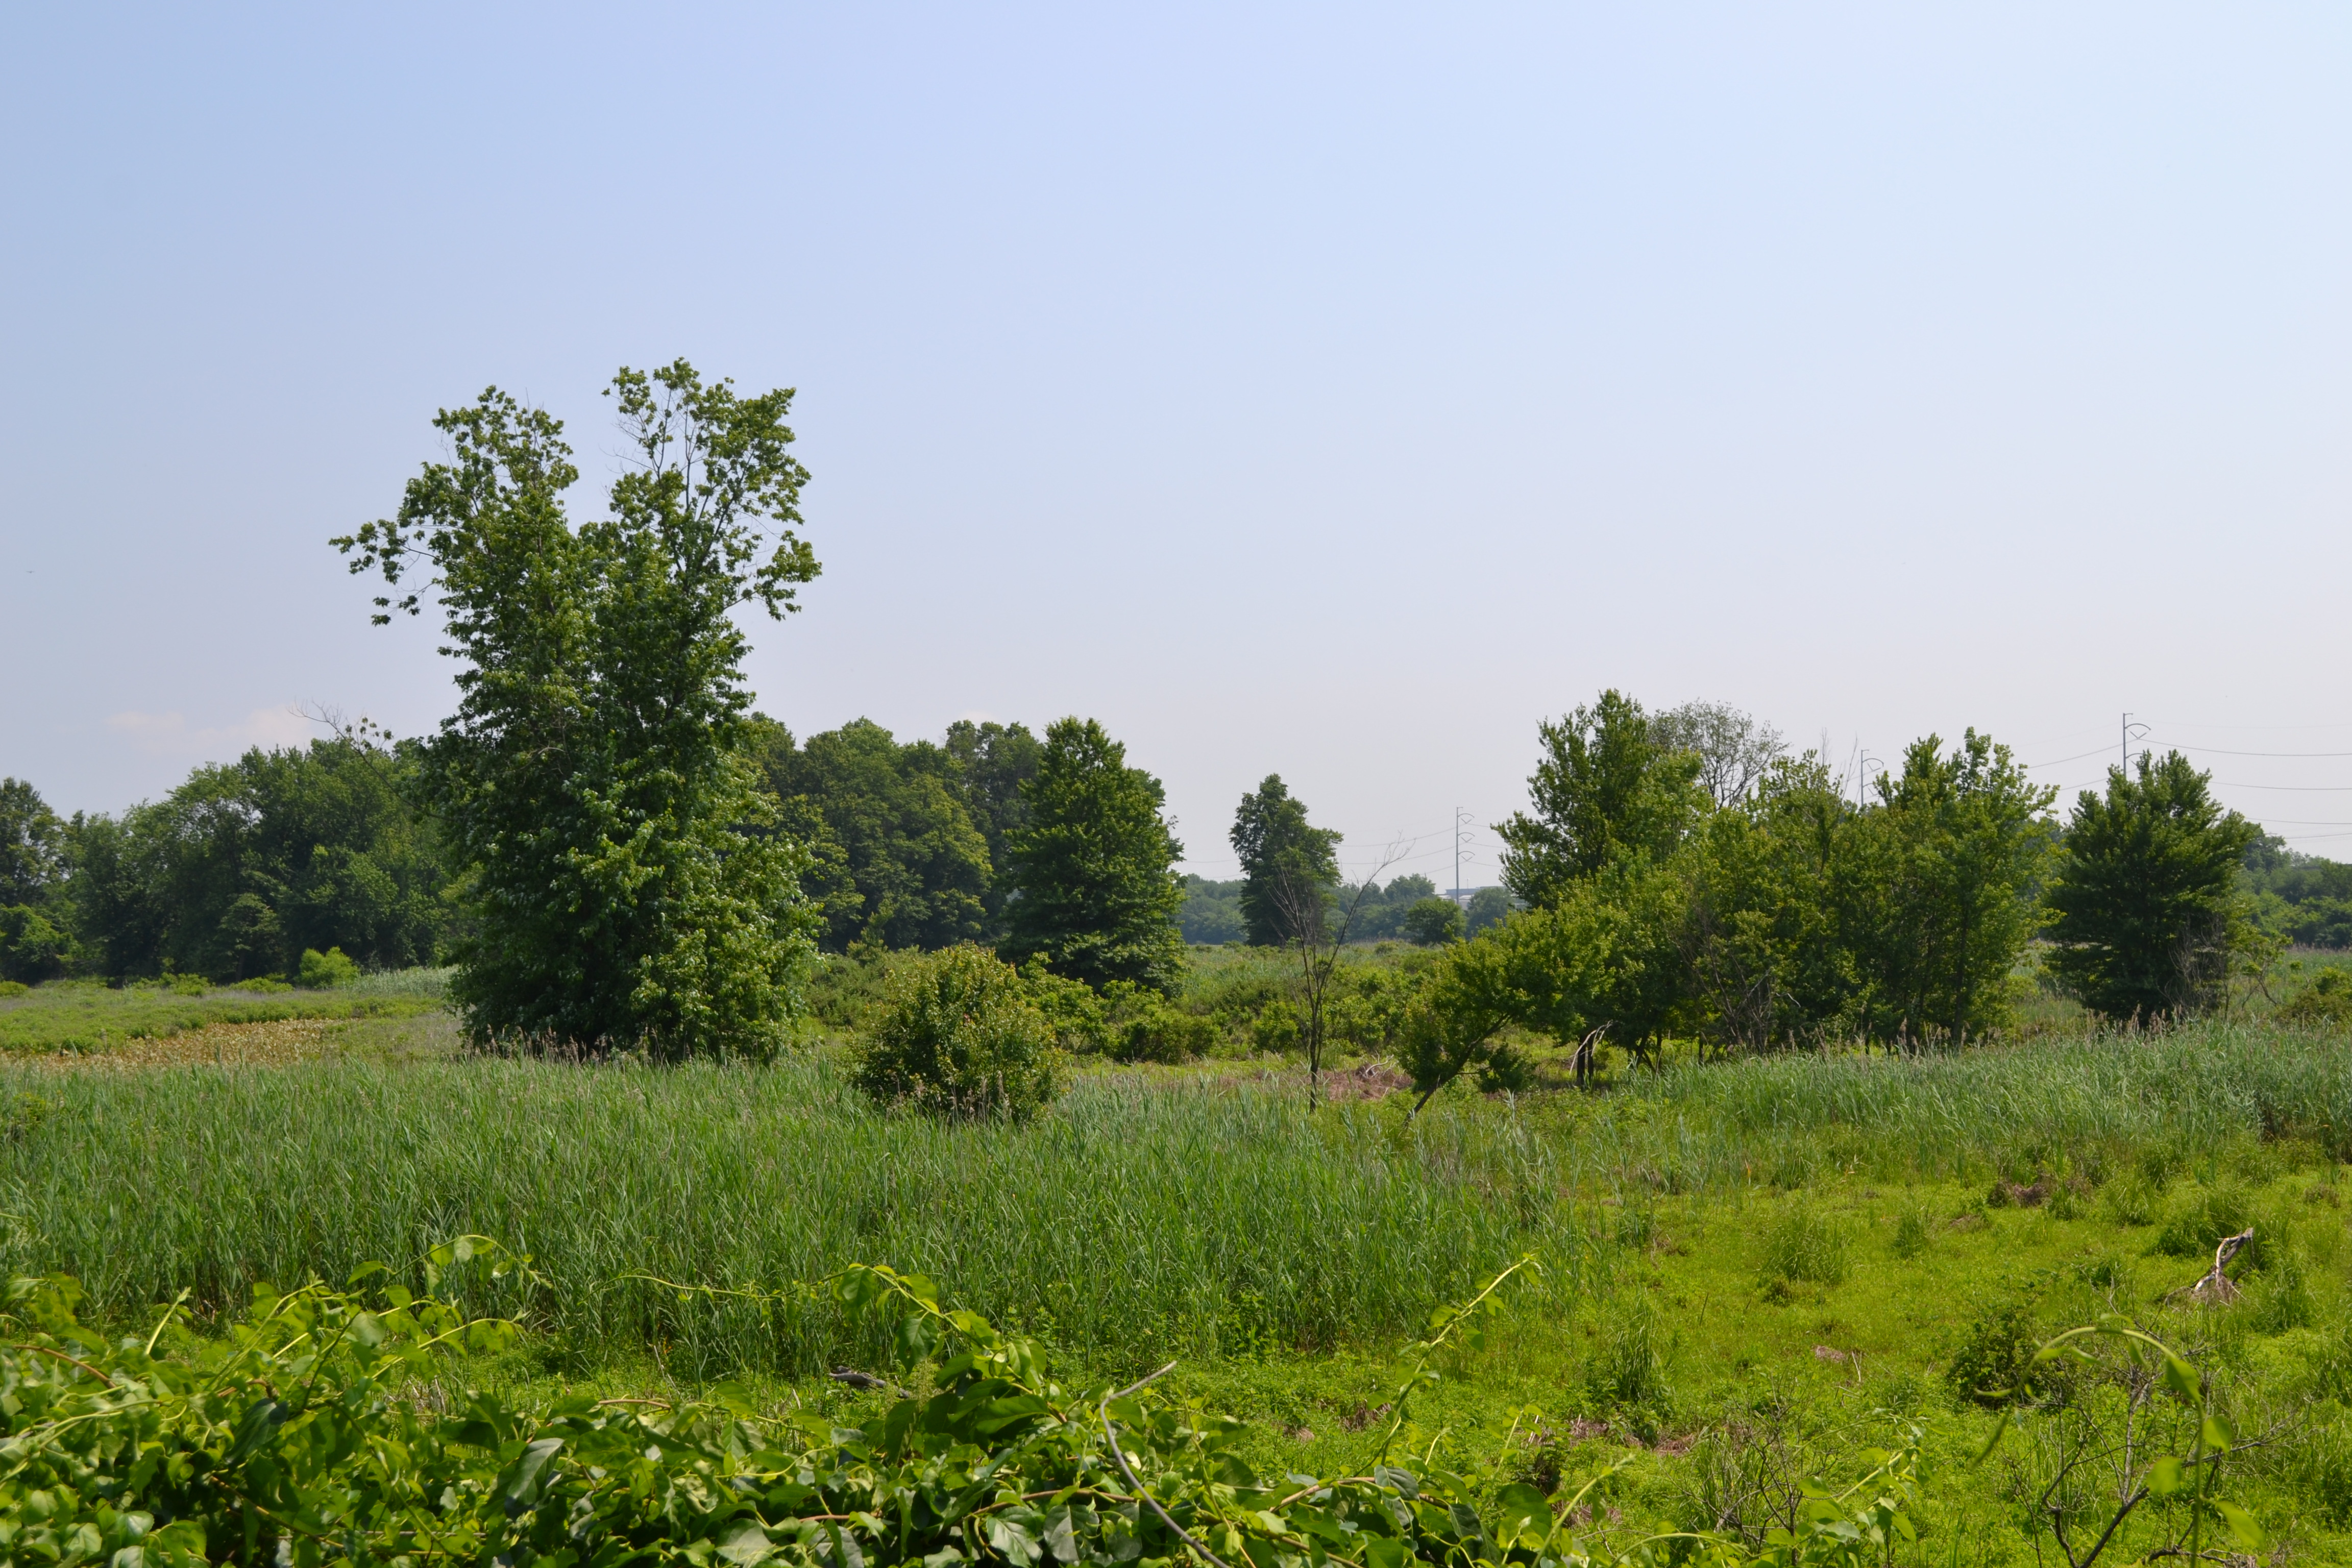 In total the refuge today is made of nearly 1,000 acres of woods, ponds, marsh and meadow